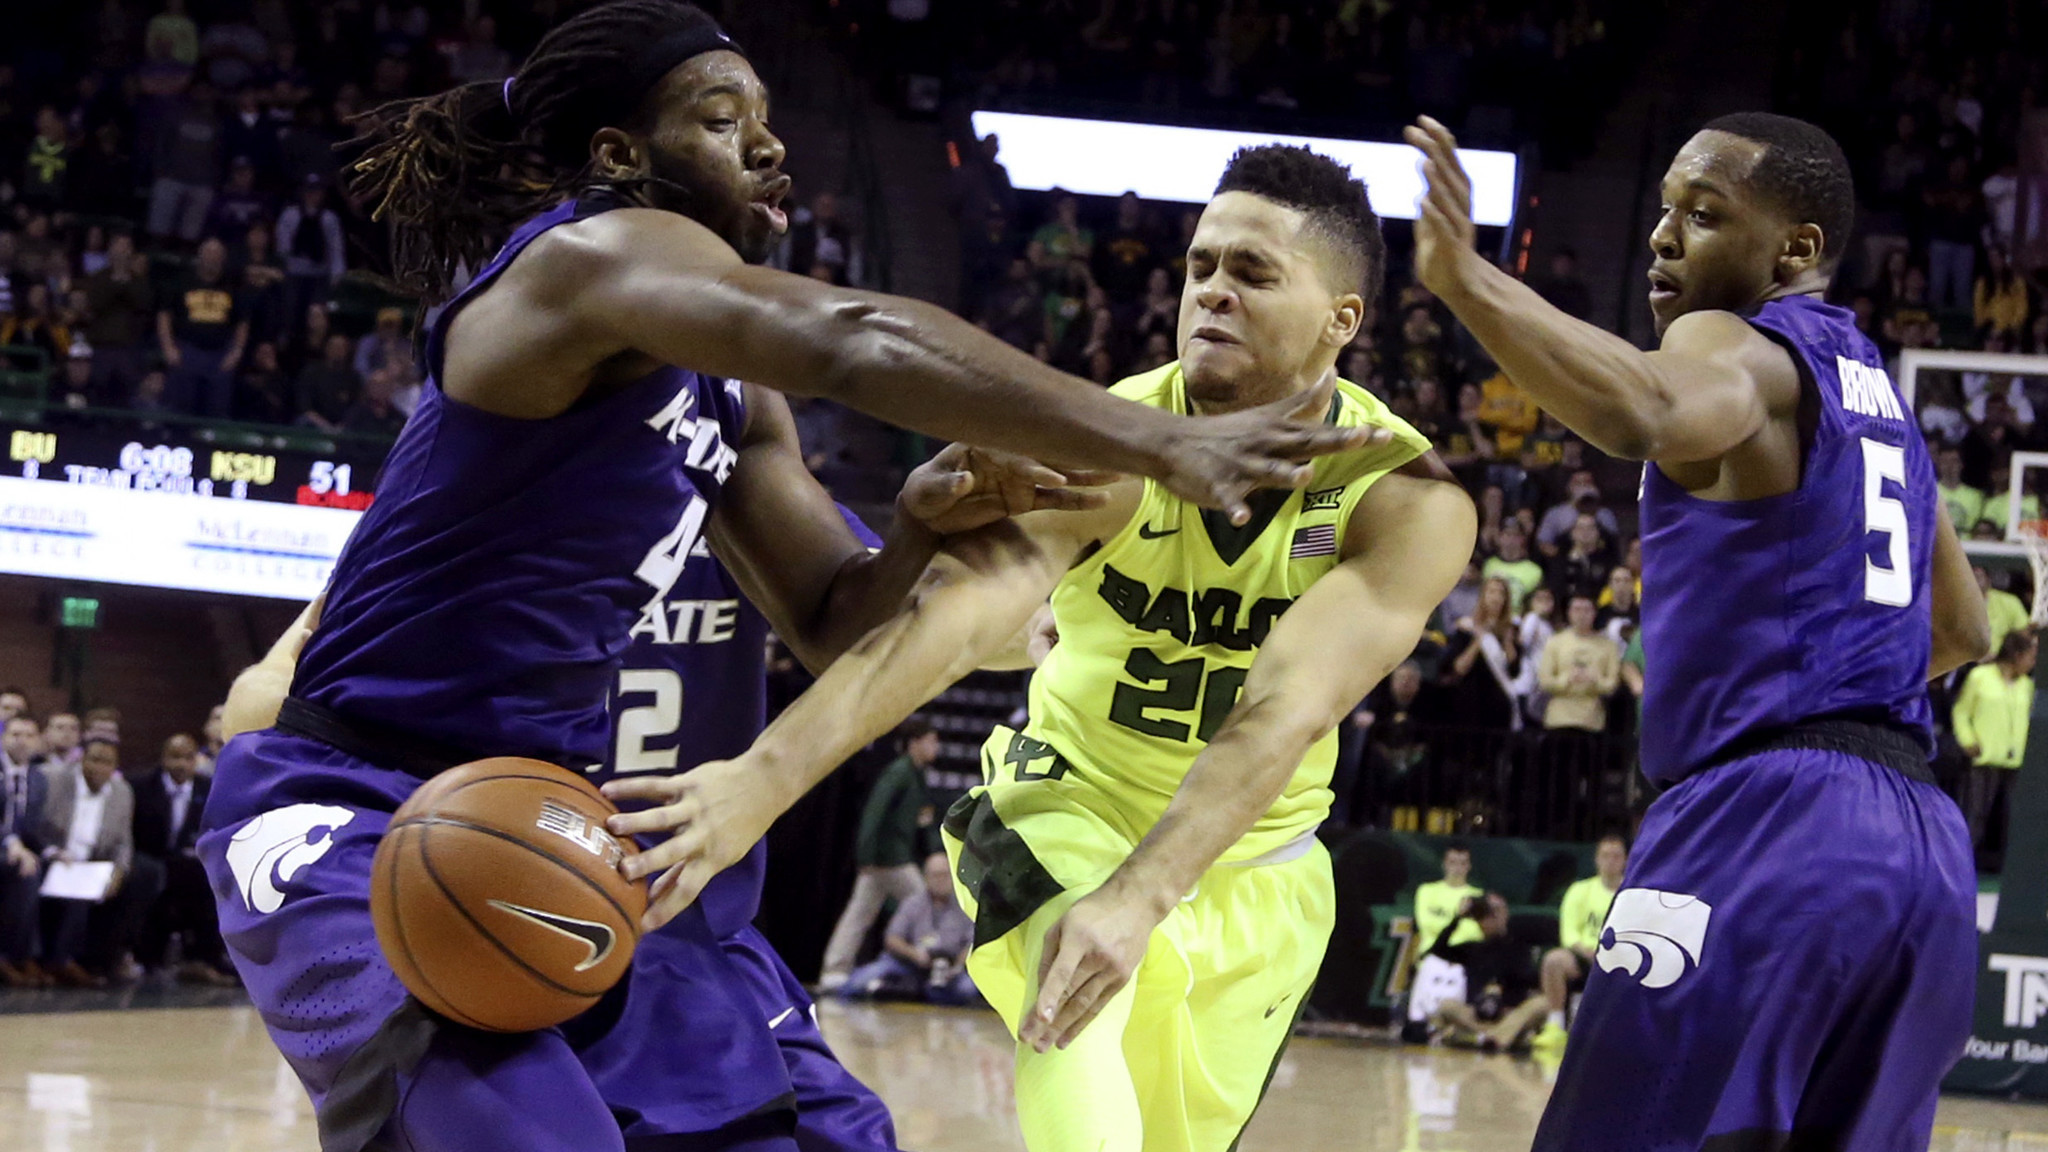 College basketball: No. 2 Baylor loses second in a row; No. 3 Kansas upset